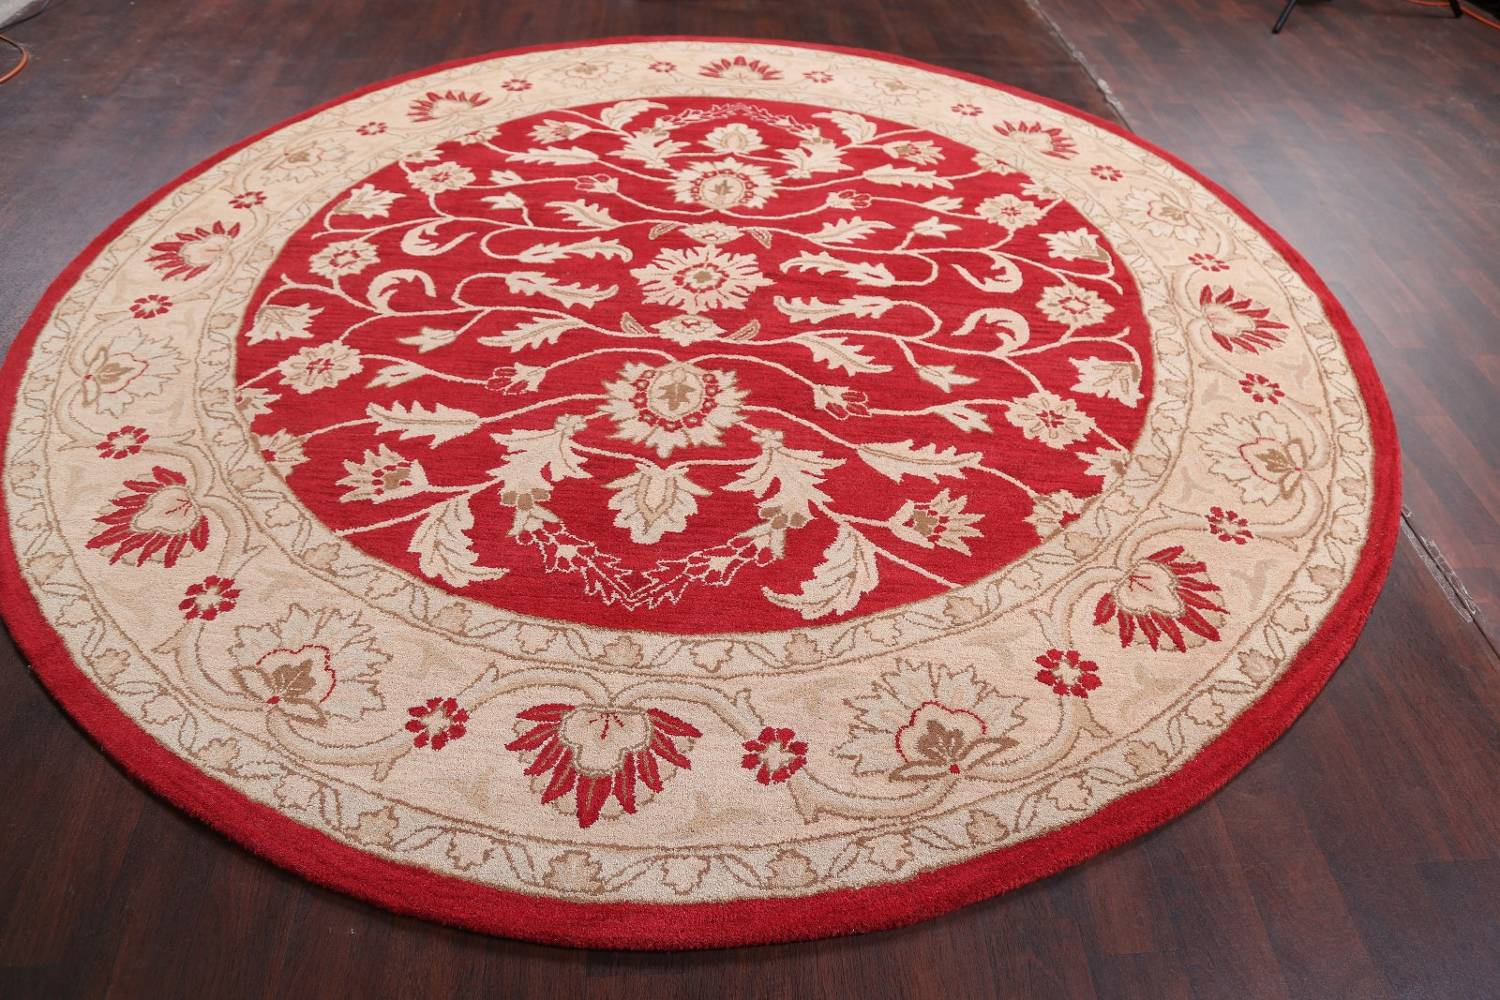 All-Over Floral Red Oushak Agra Oriental Area Rug image 13